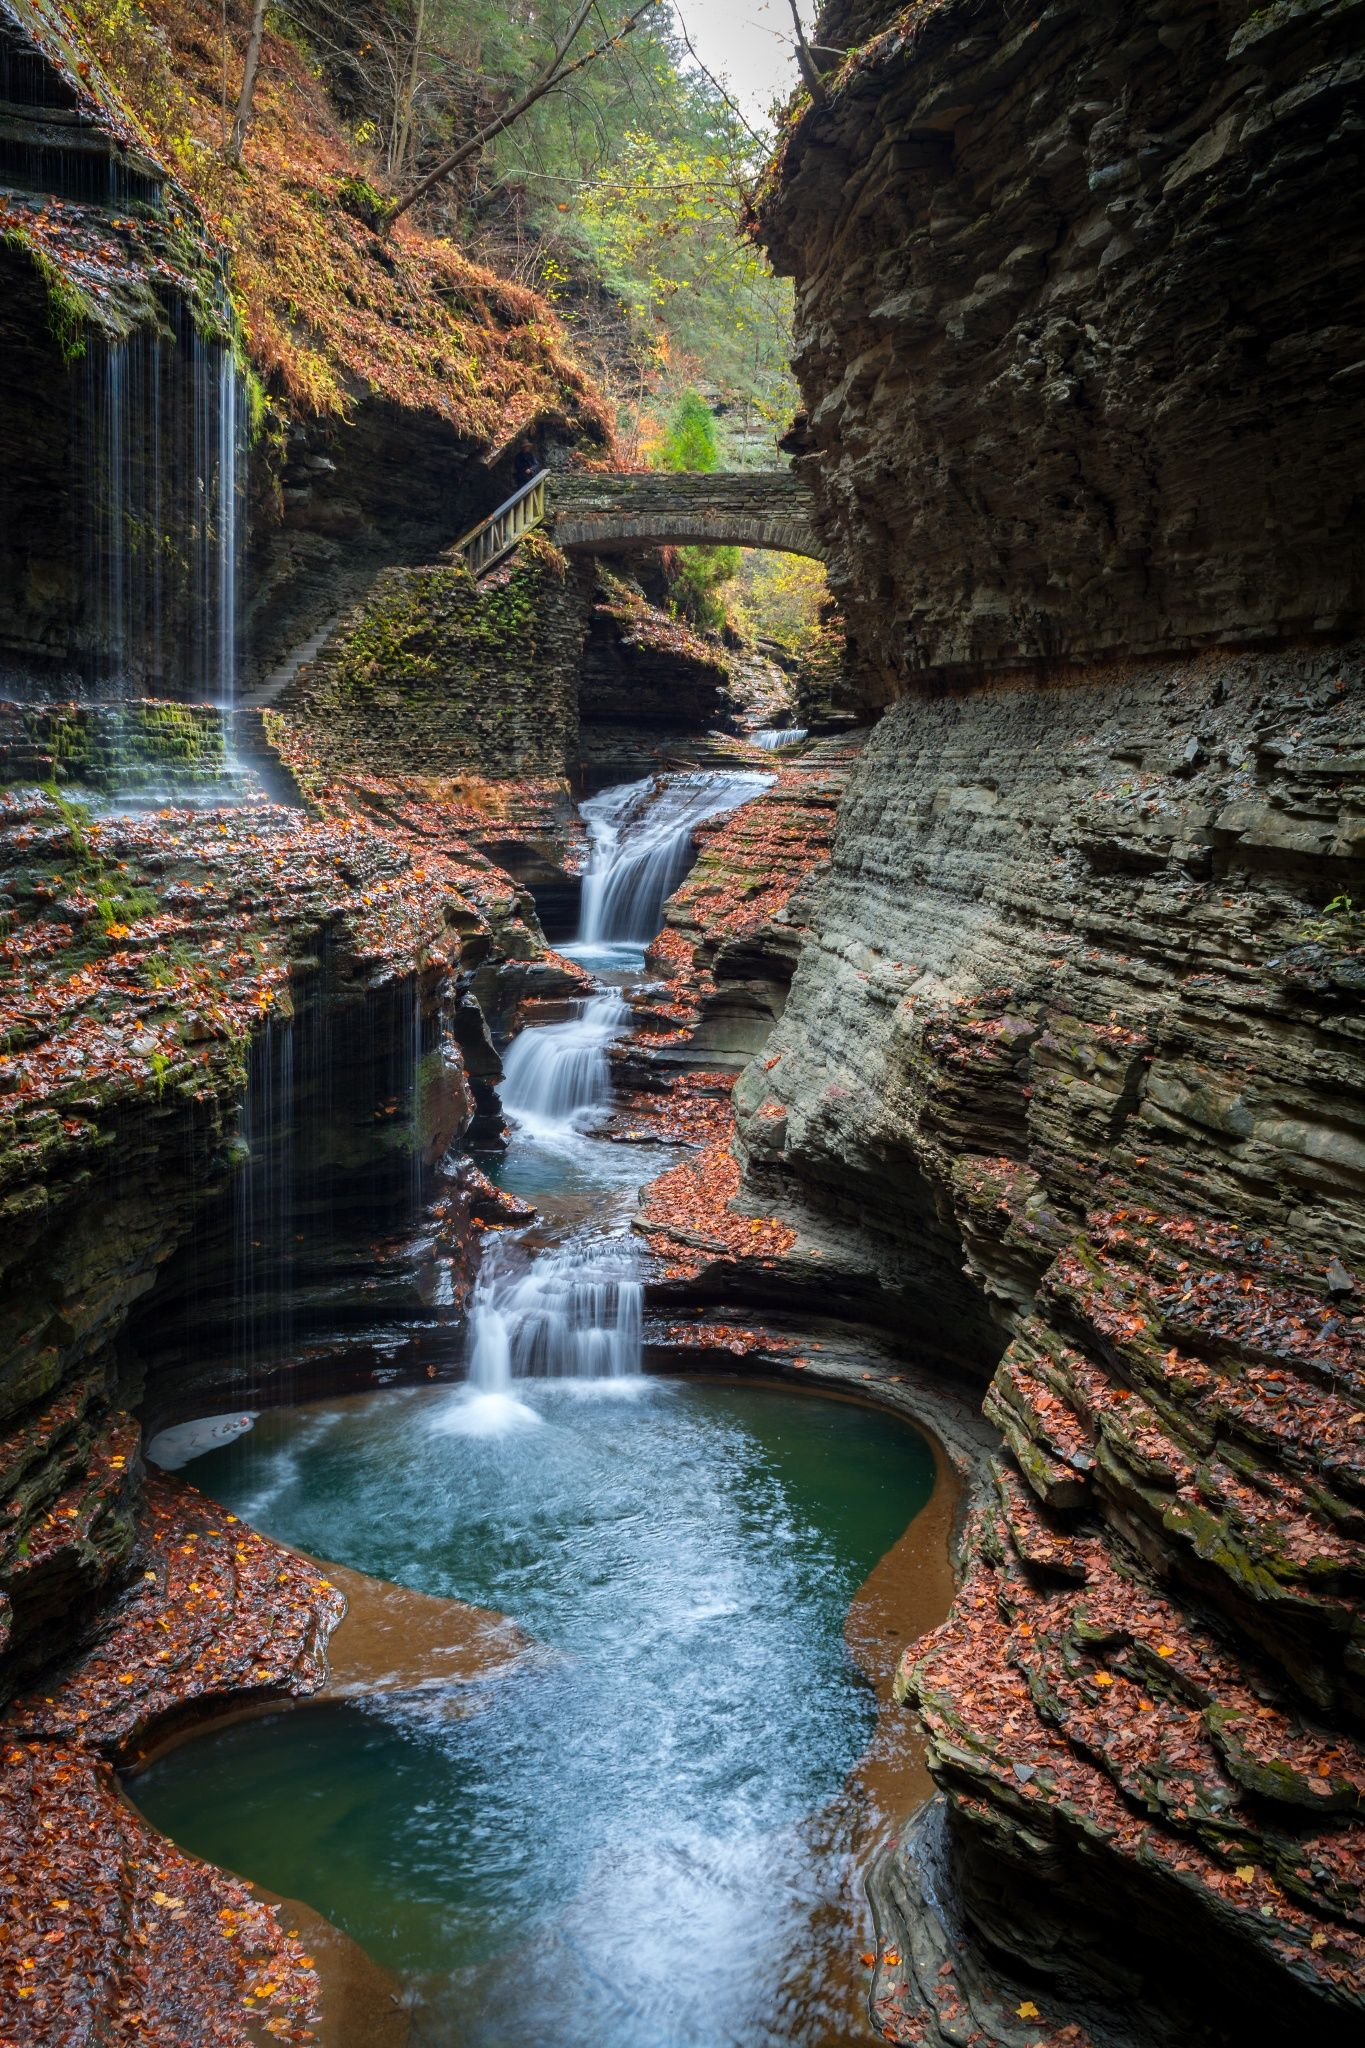 Taken during an awesome hike with my brother through the gorge at Watkins Glen, this photo of Rainbow Falls is one of my favorite shots I've ever made.